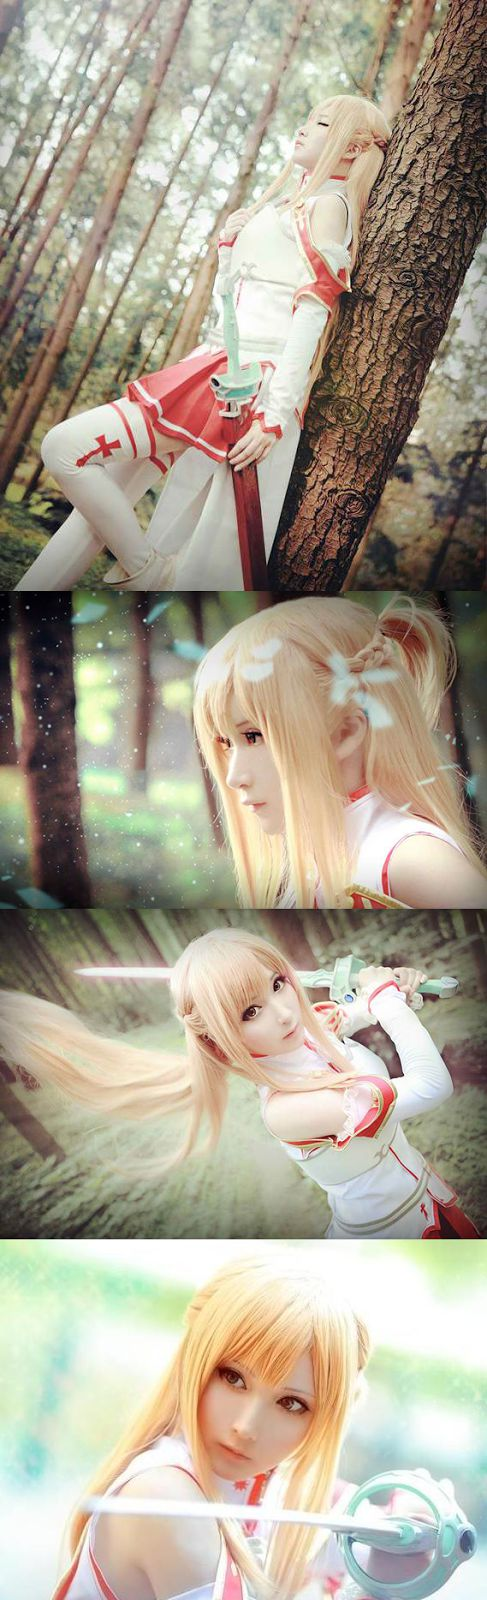 best cosplay asuna wow